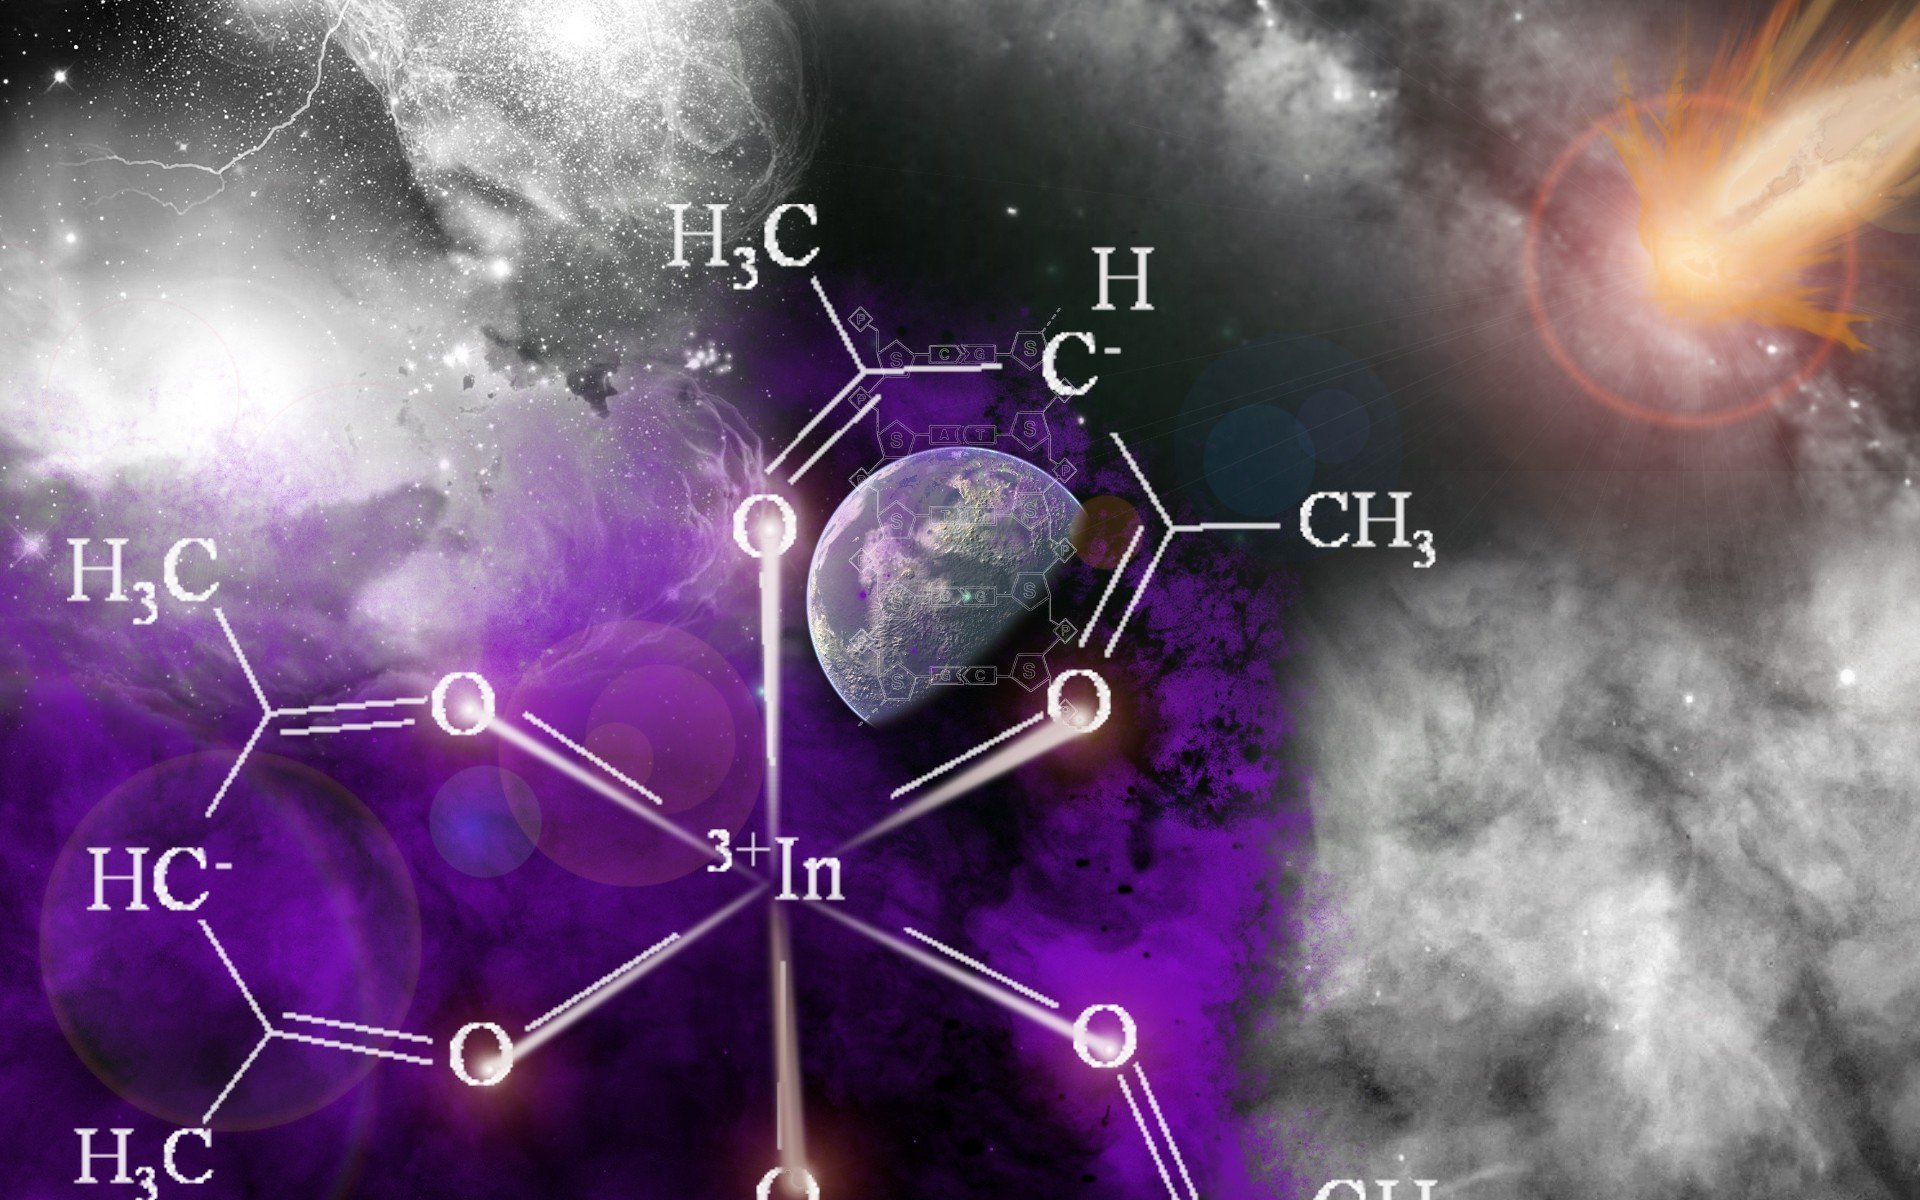 outer space energy chemistry wallpaper 1920x1200